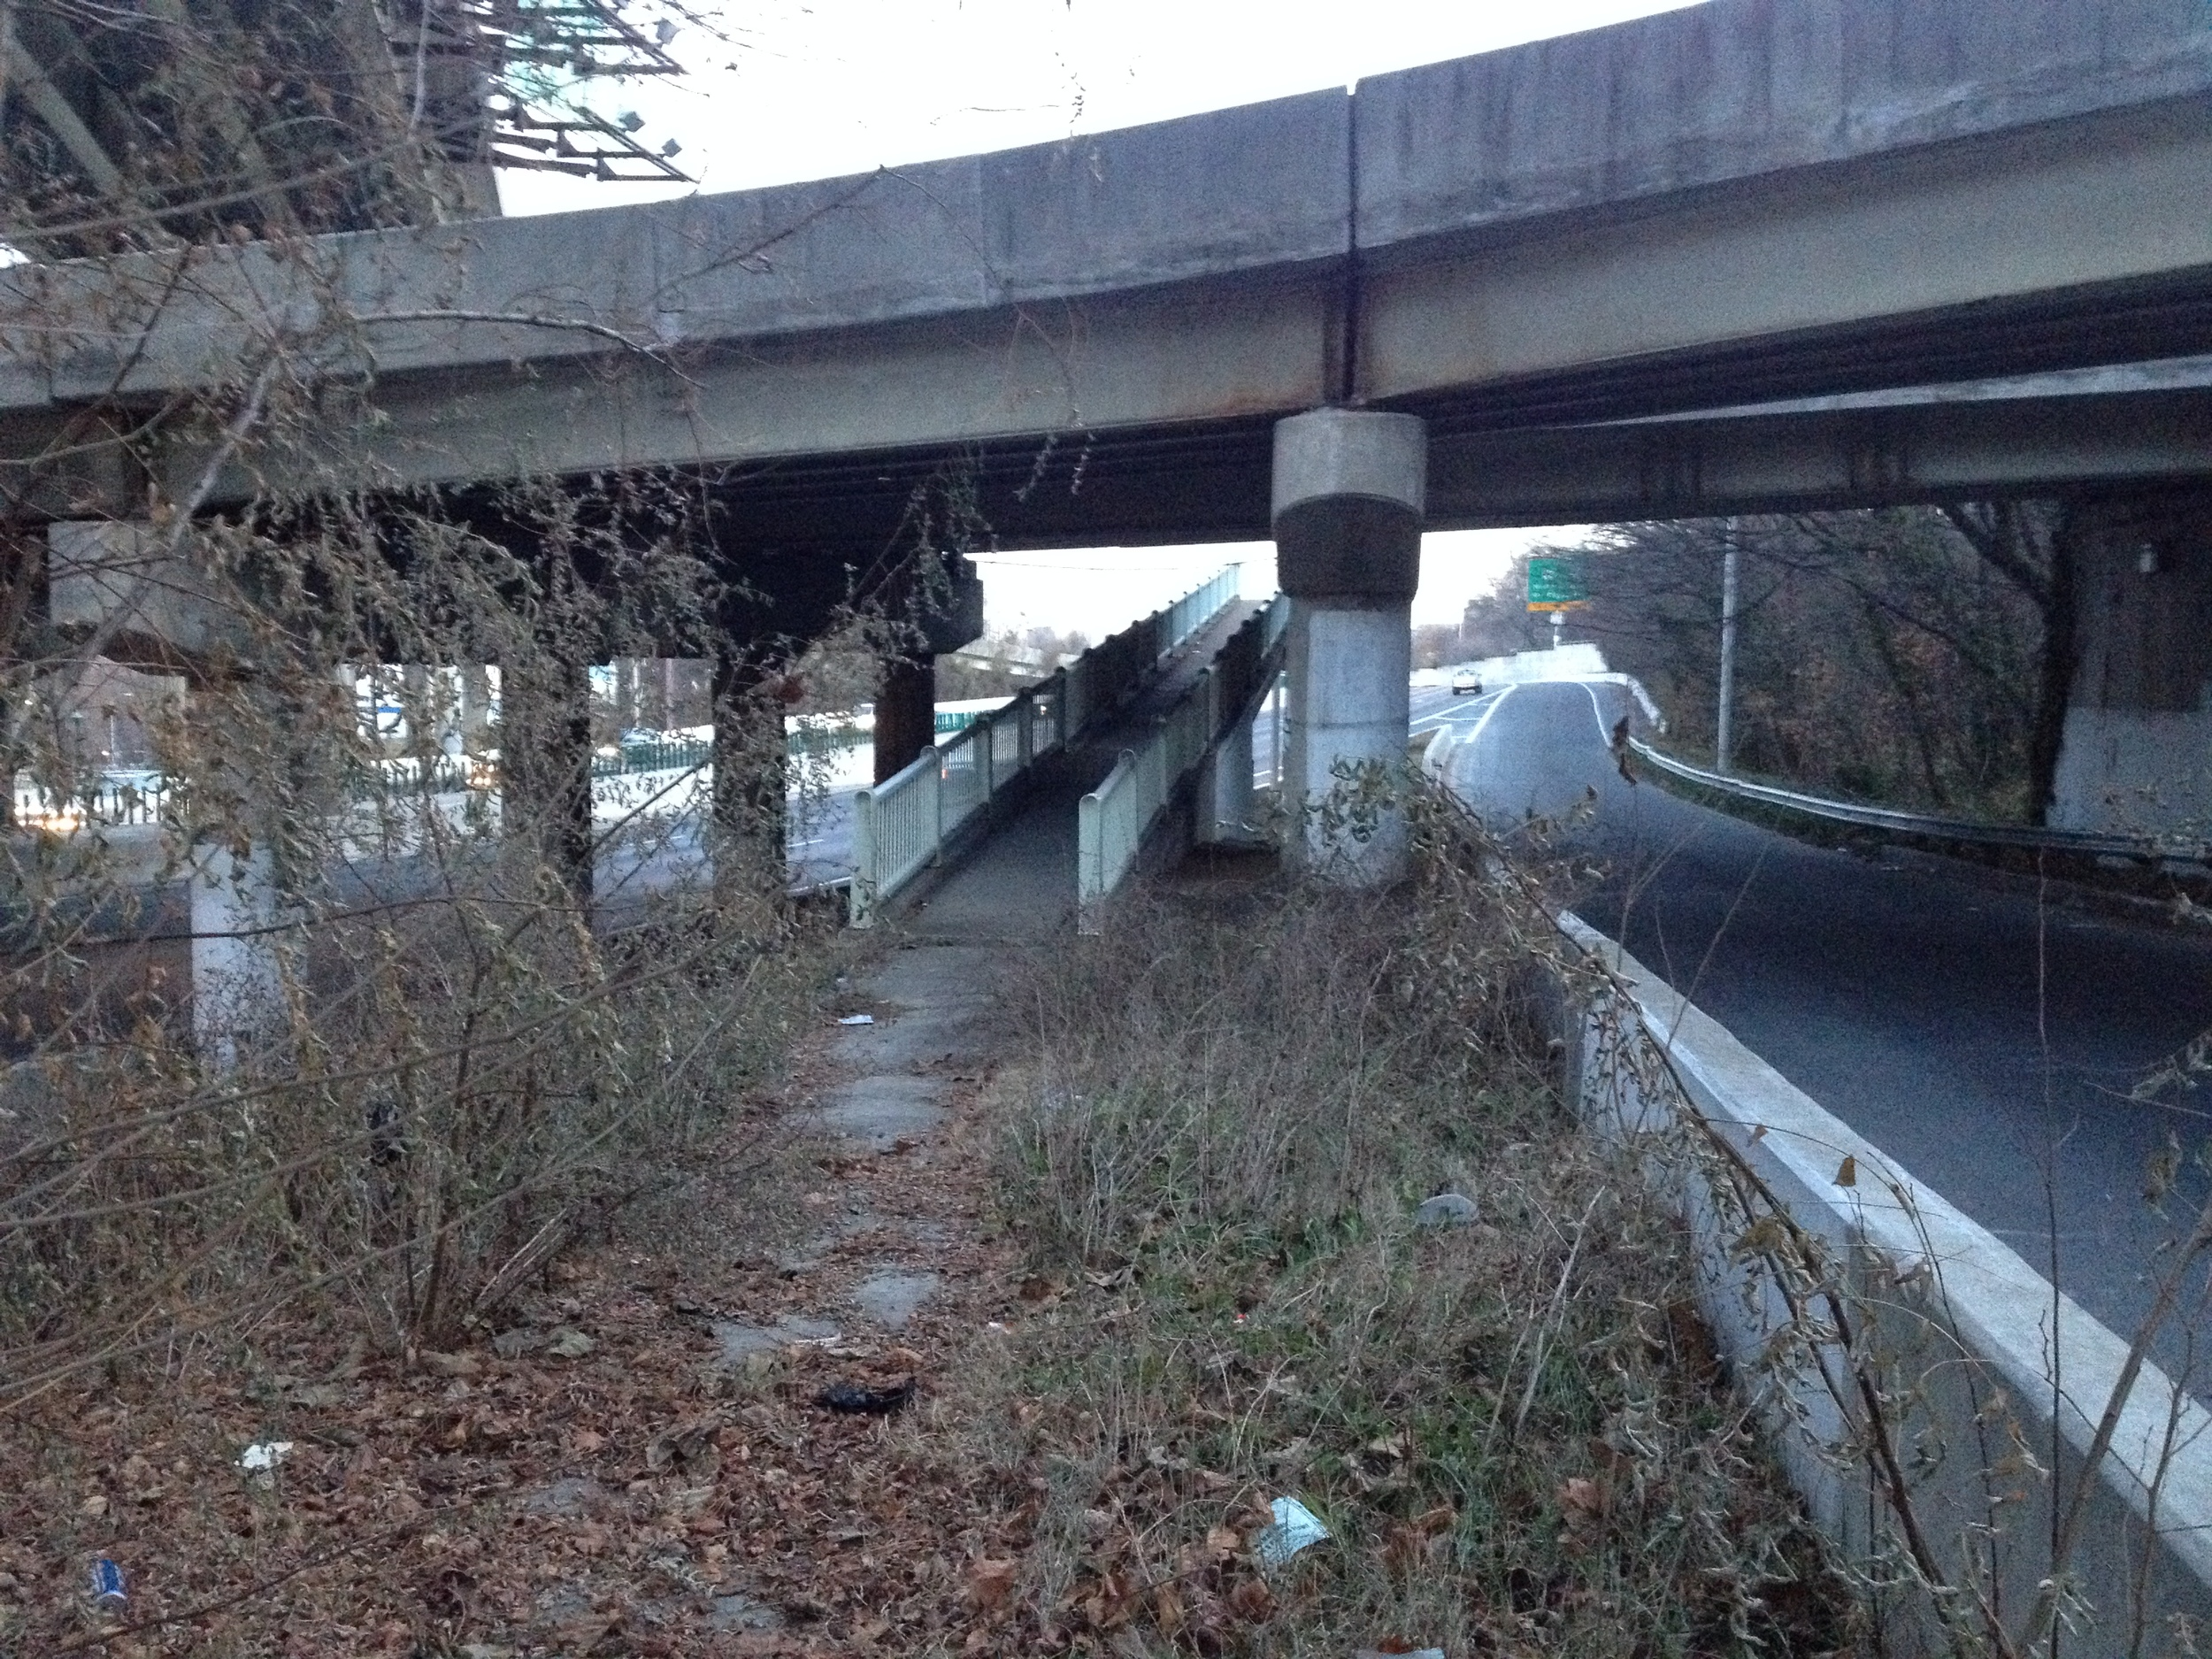 Said walkway dead-ends, without explanation, on a wedge of land marooned within the highway. Surrounded on all sides by traffic, buried river underfoot, nowhere to go but back the way I came . . .